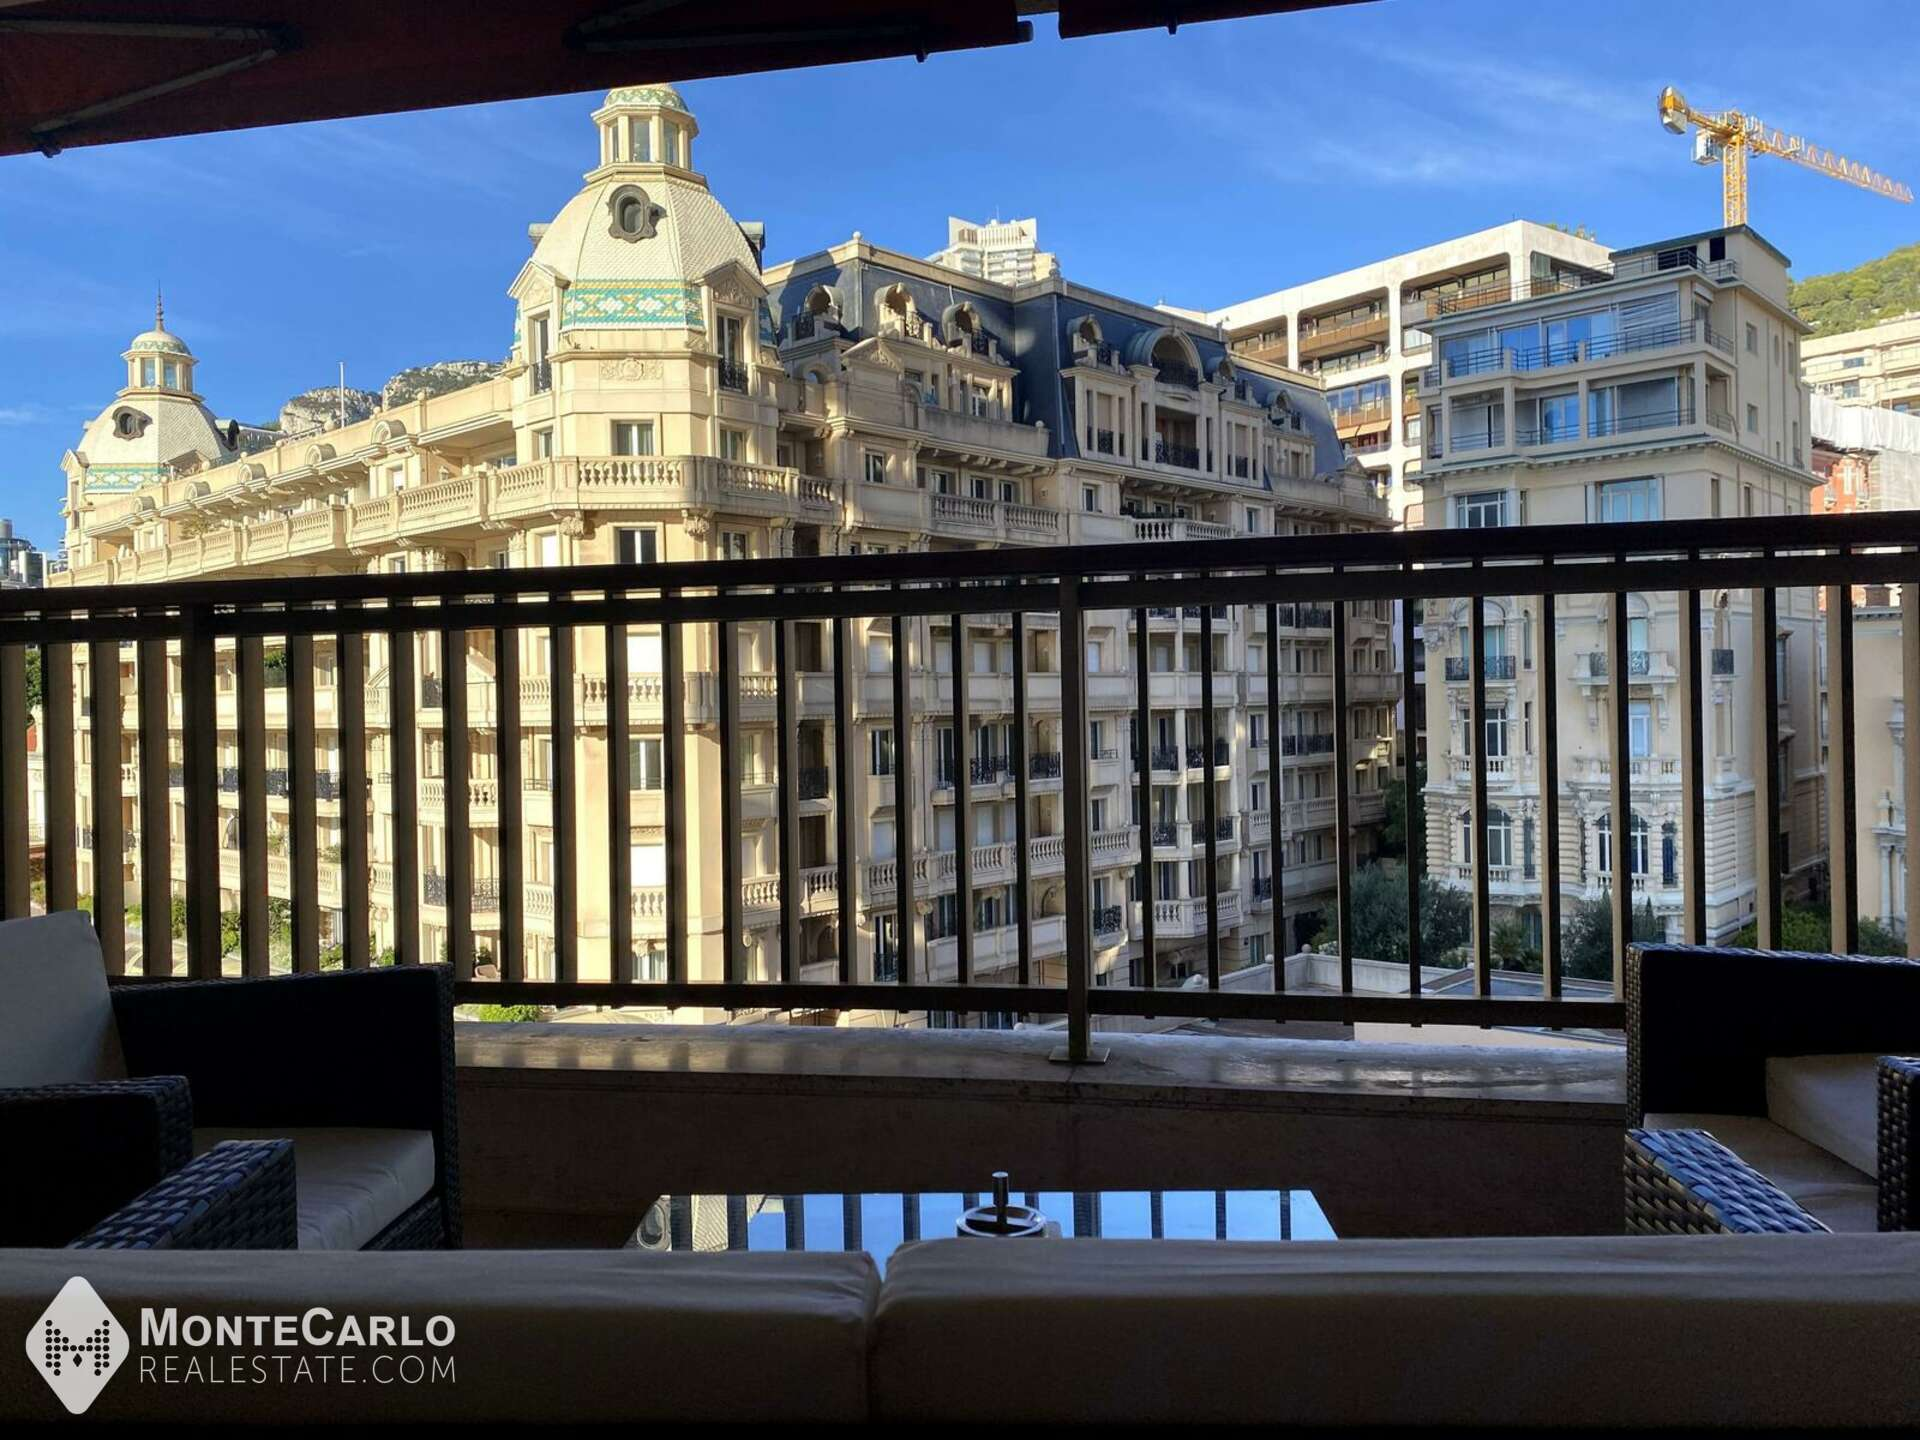 For sale Le Mirabeau - Apartment / 2 rooms : 4 300 000 € | Monte-Carlo Real Estate [CO-MR12-RD]